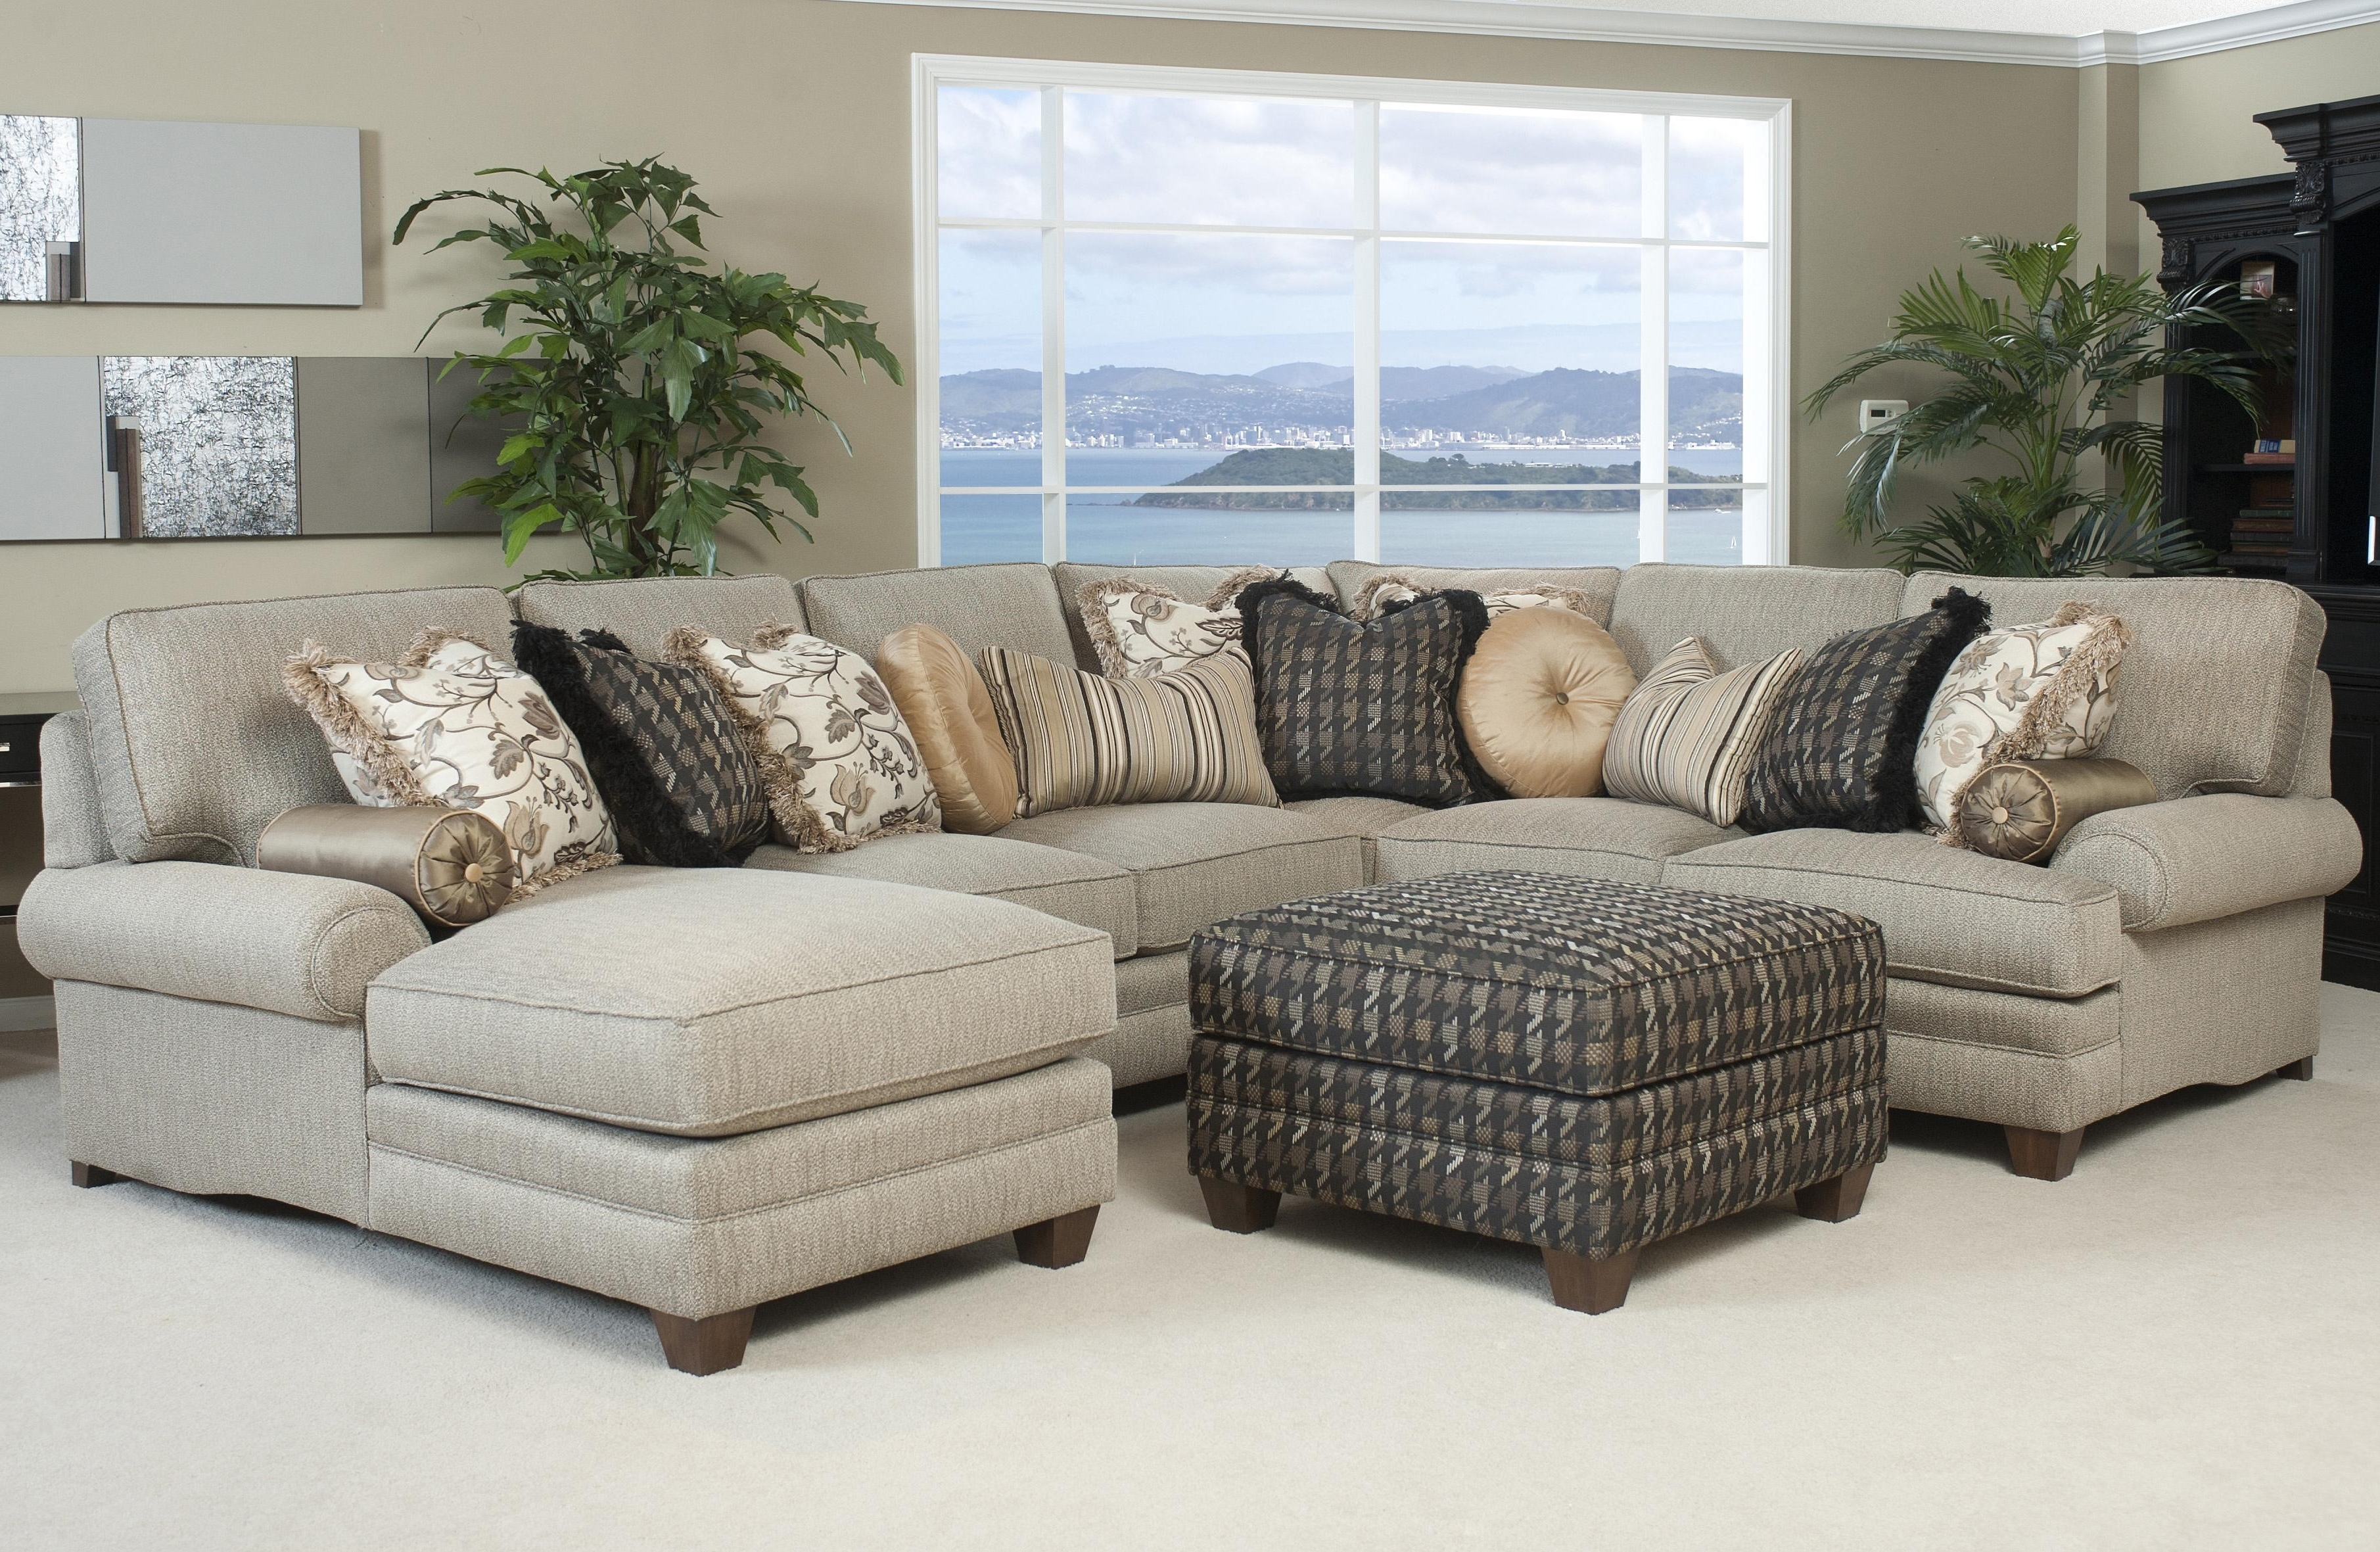 Popular Kingston Sectional Sofas Regarding Furniture : Unique Most Comfortable Sectional Couches 19 Sofa (View 13 of 20)